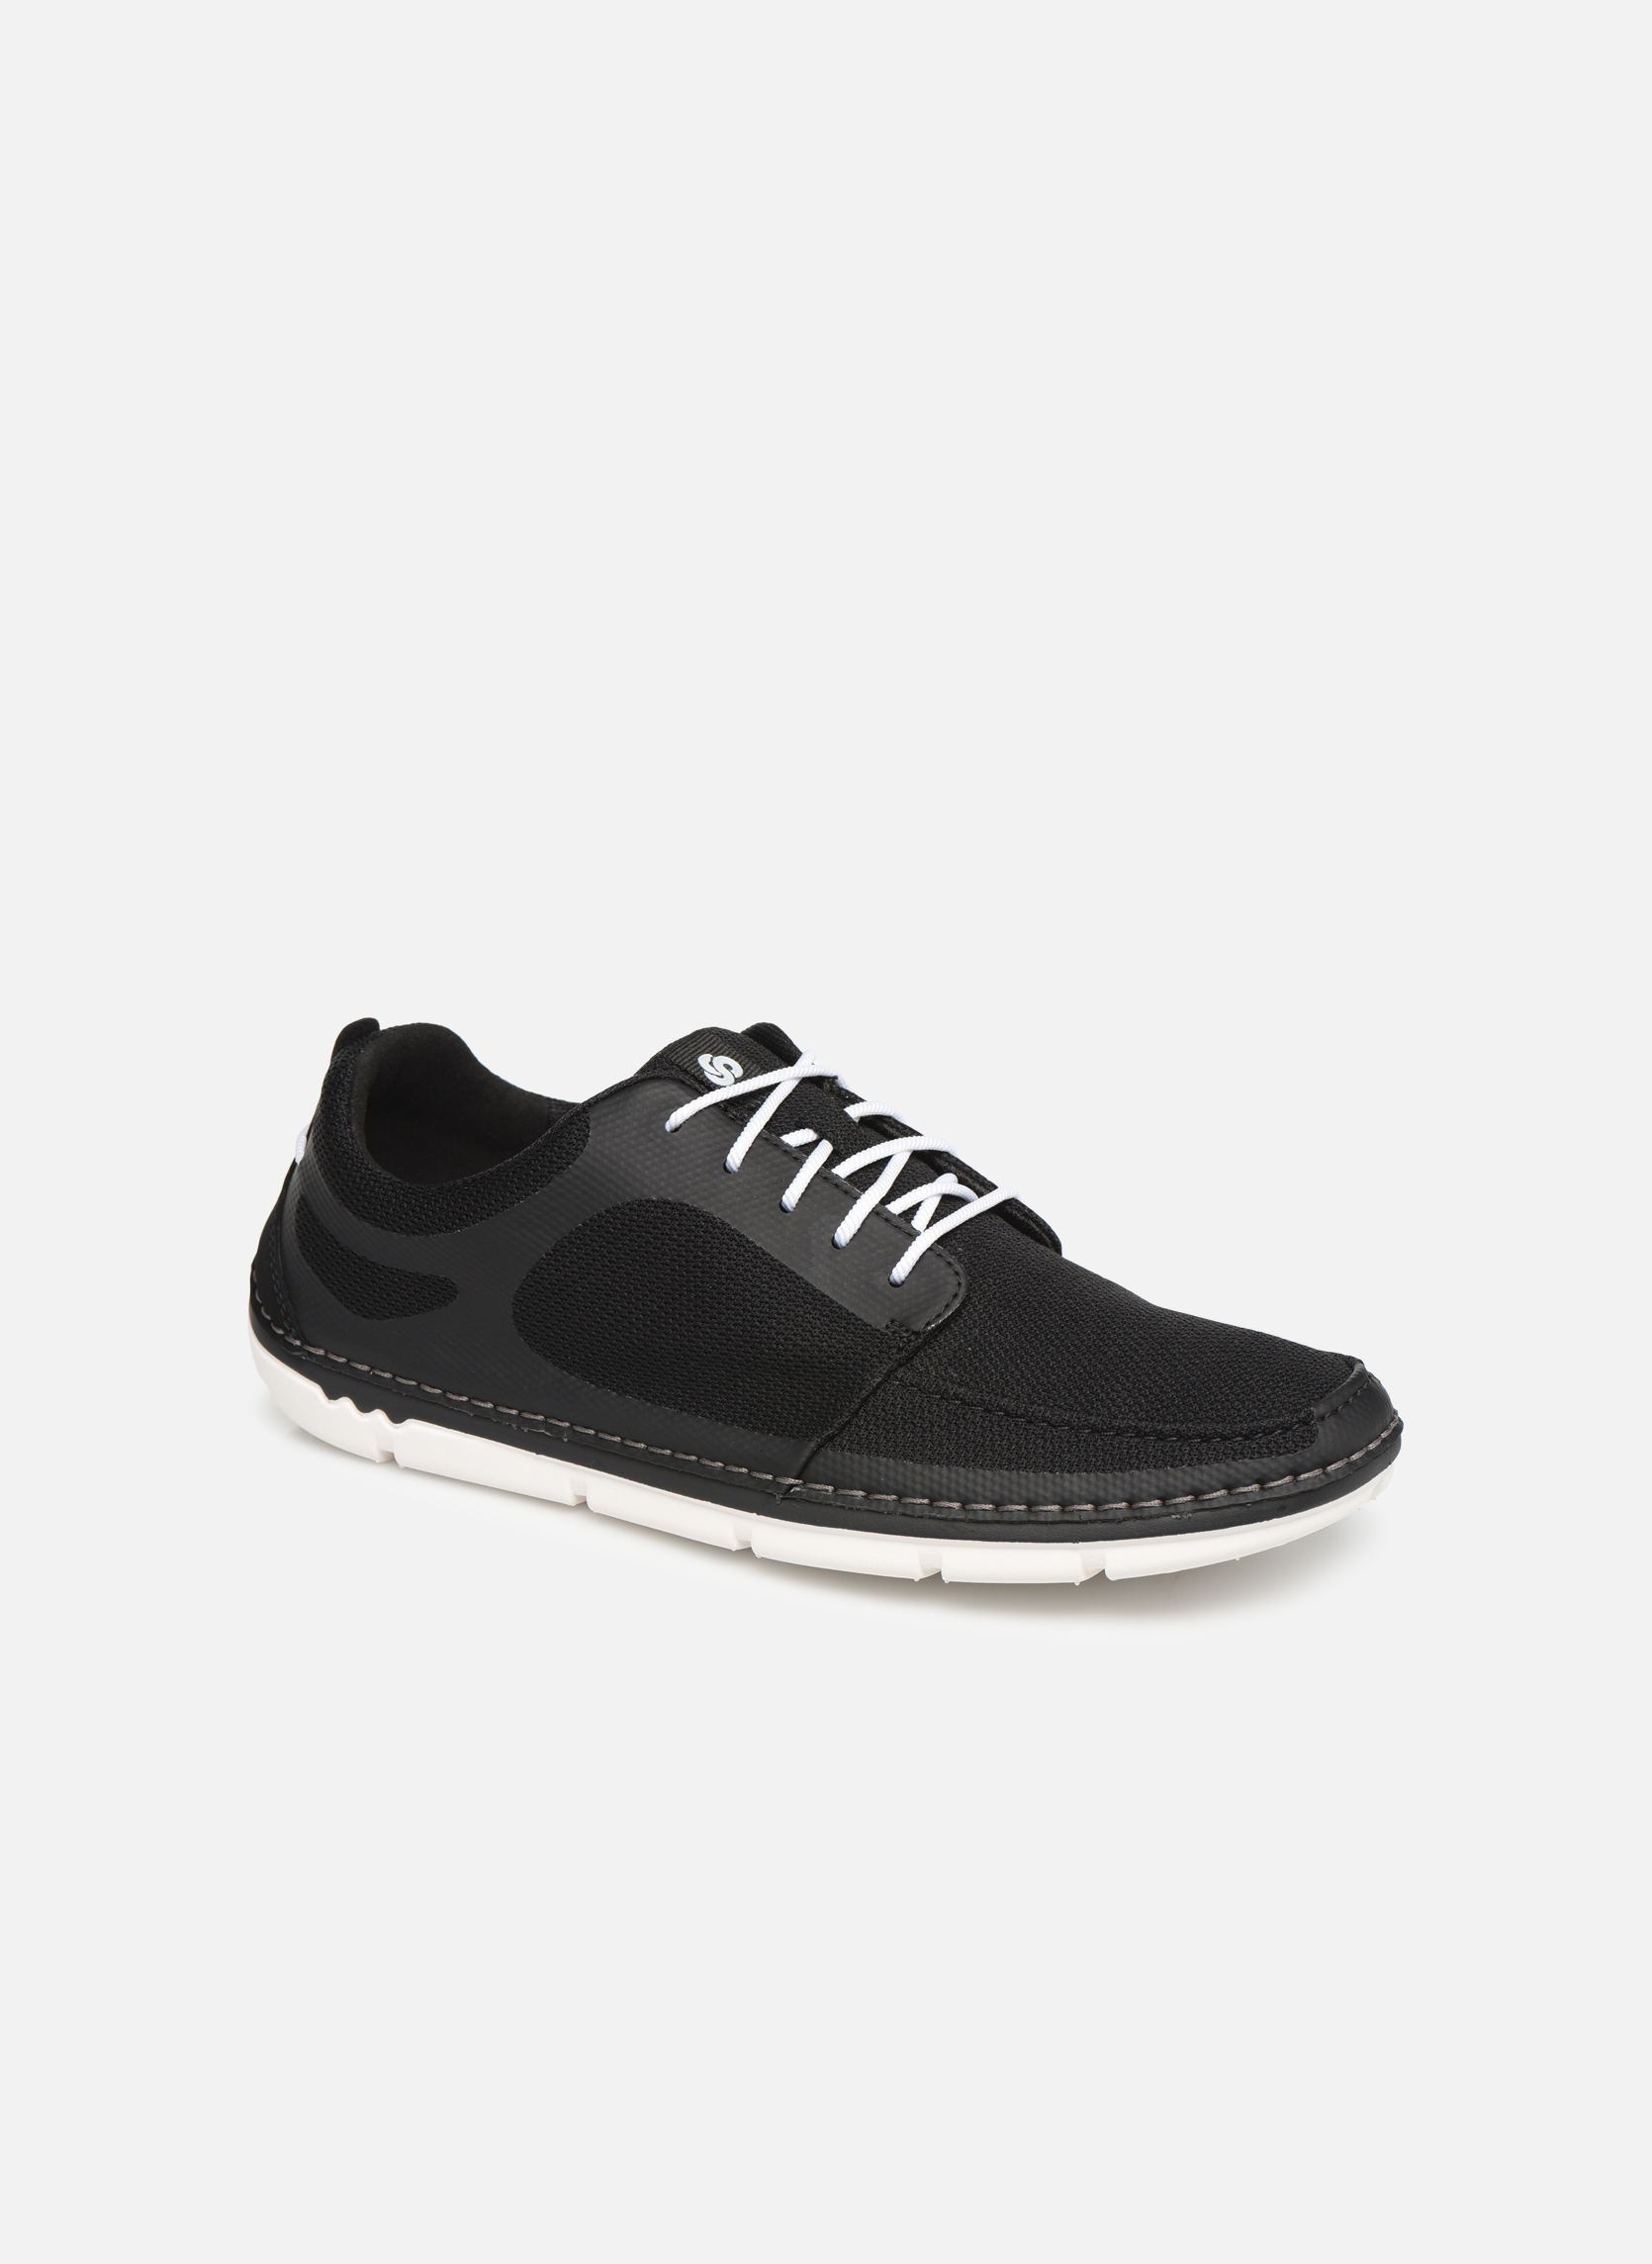 Sneakers Cloudsteppers by Clarks Zwart